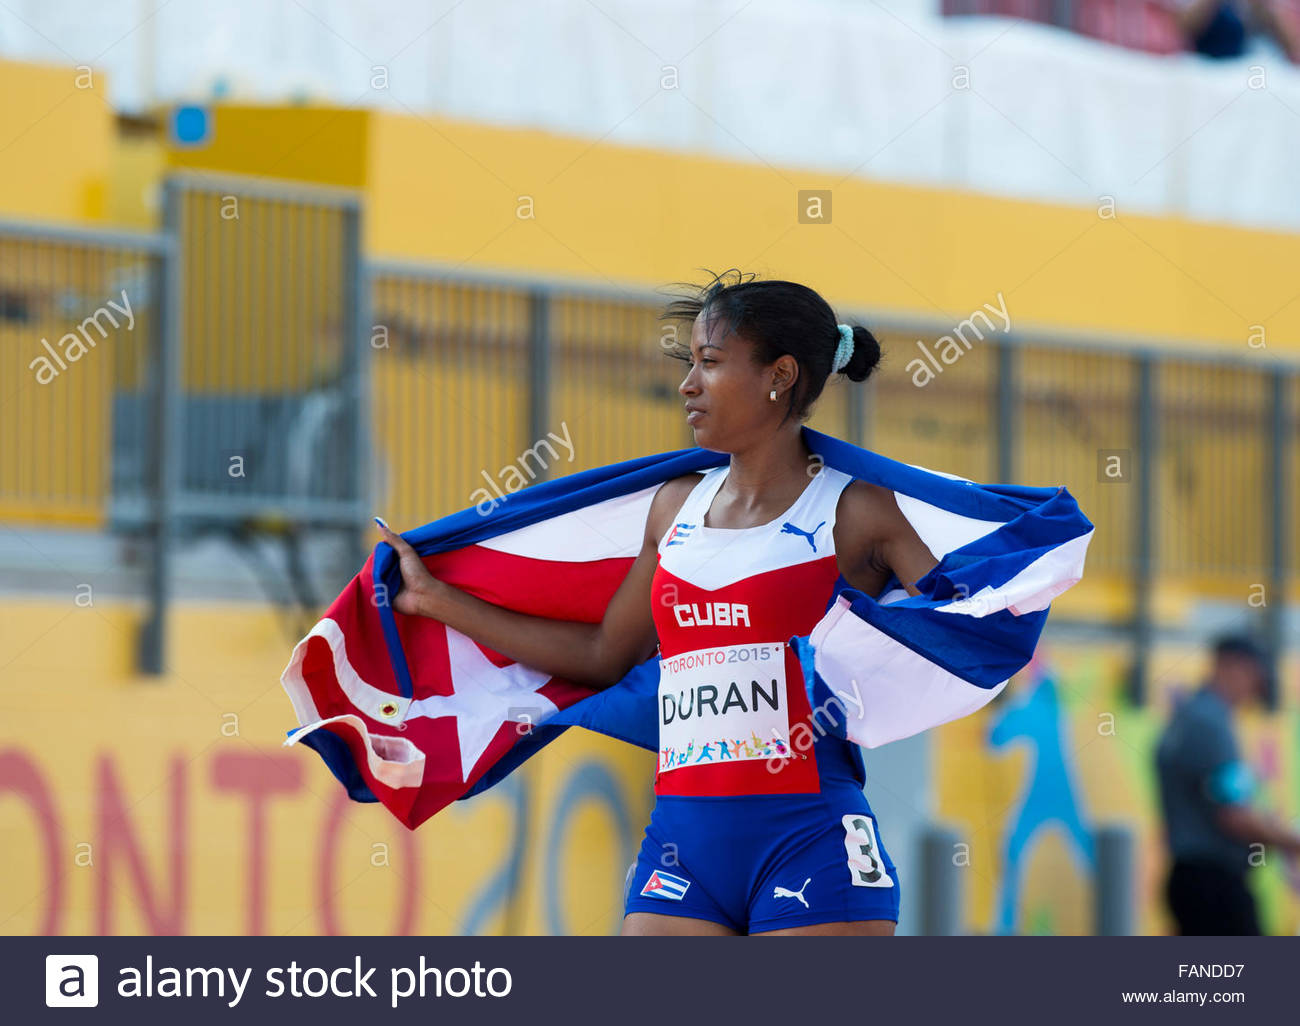 Omara Duran from Cuba wins two Gold Medals during day two of Parapan Am Games Athletics in Toronto. She wins in - Stock Image